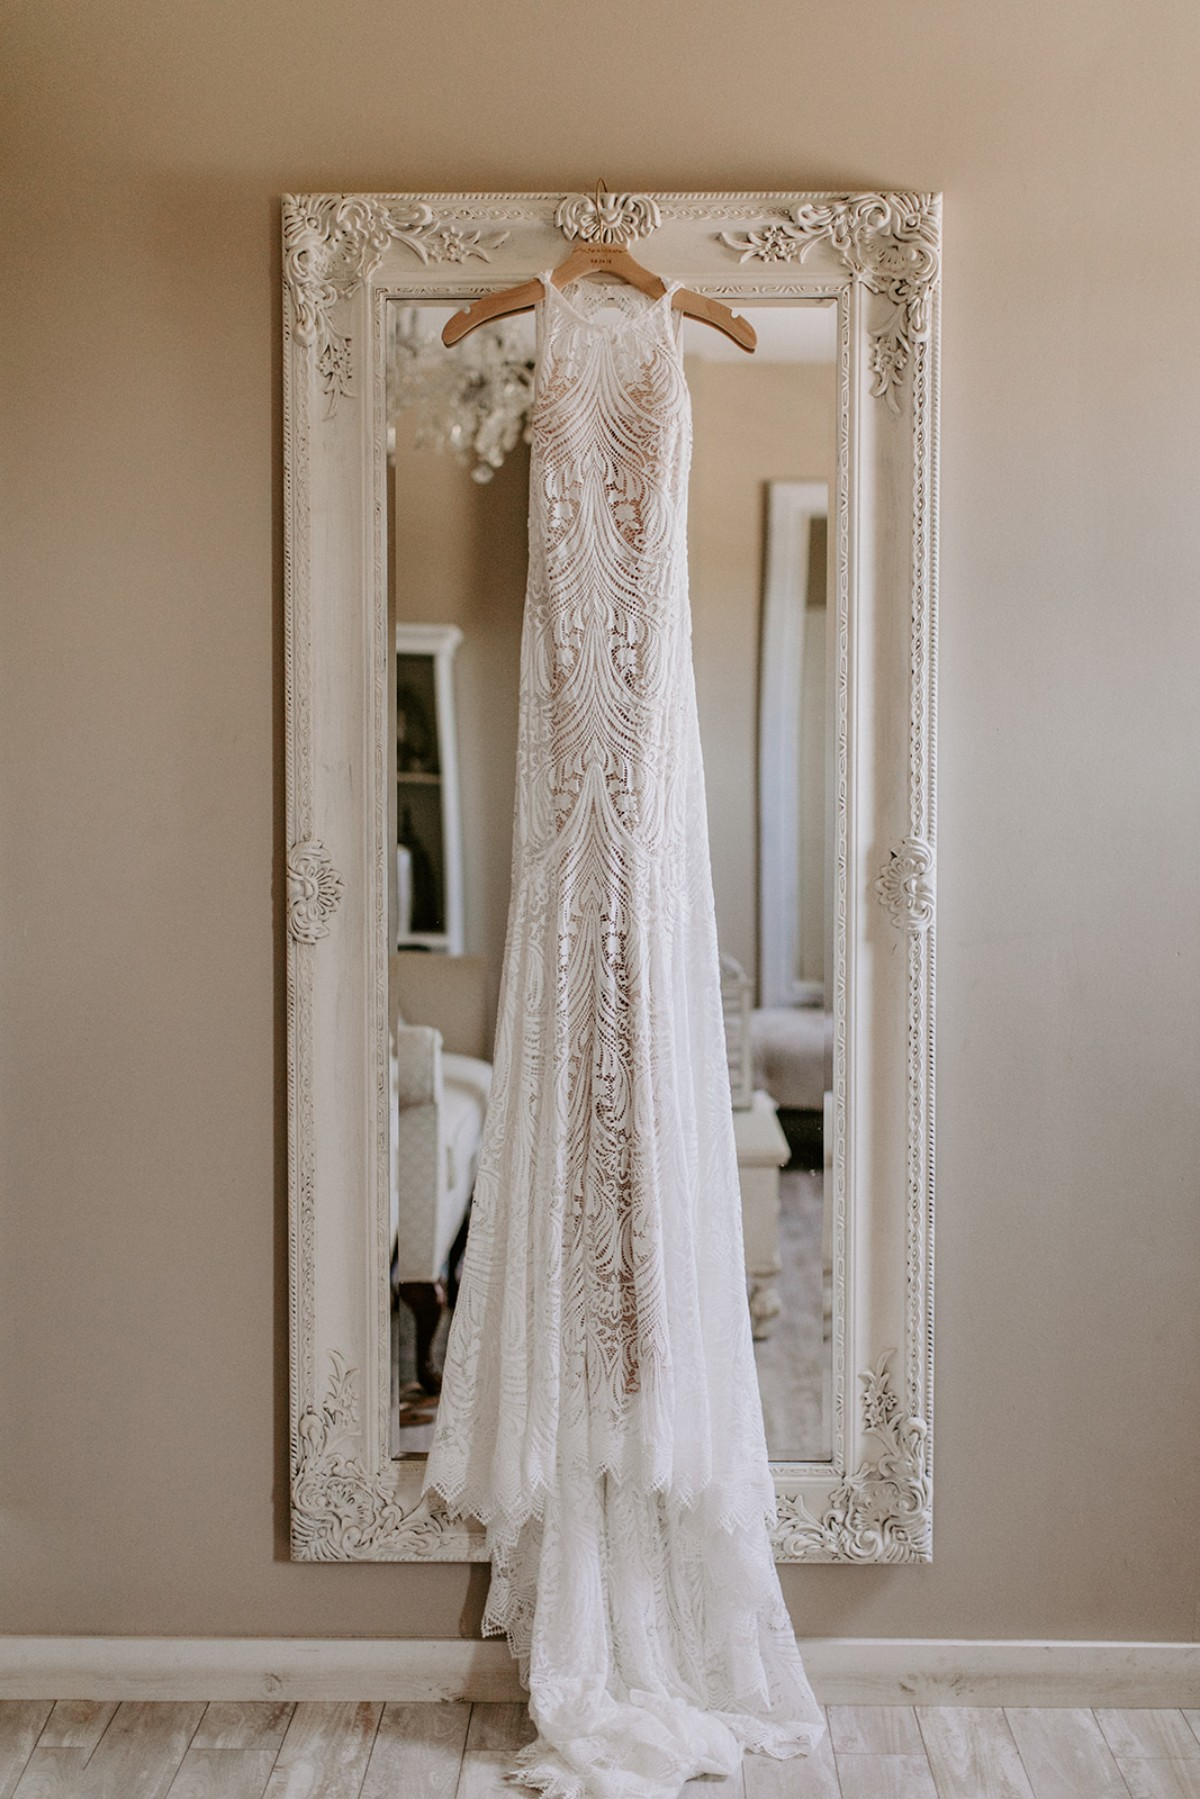 High neck wedding dress from Lover's Society from Lovely Bride